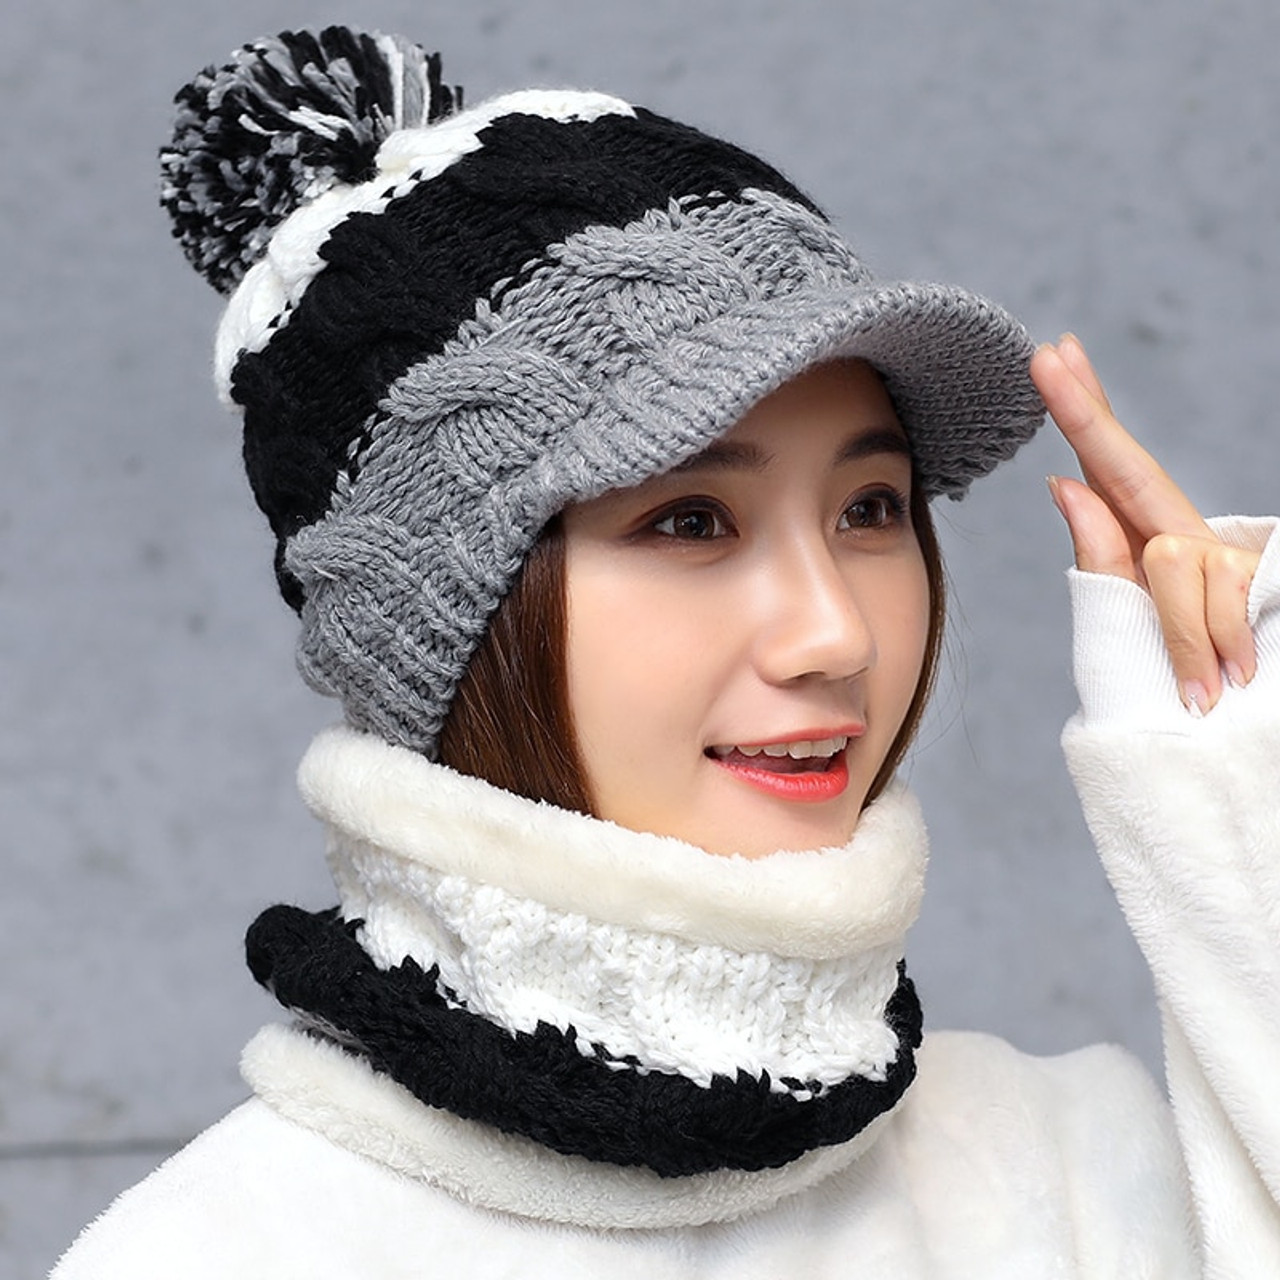 a5fb908a896e7 Balaclava Women s Knitted Hat Scarf Caps Neck Warmer Winter Hats For Men  Women Skullies Beanies Warm ...